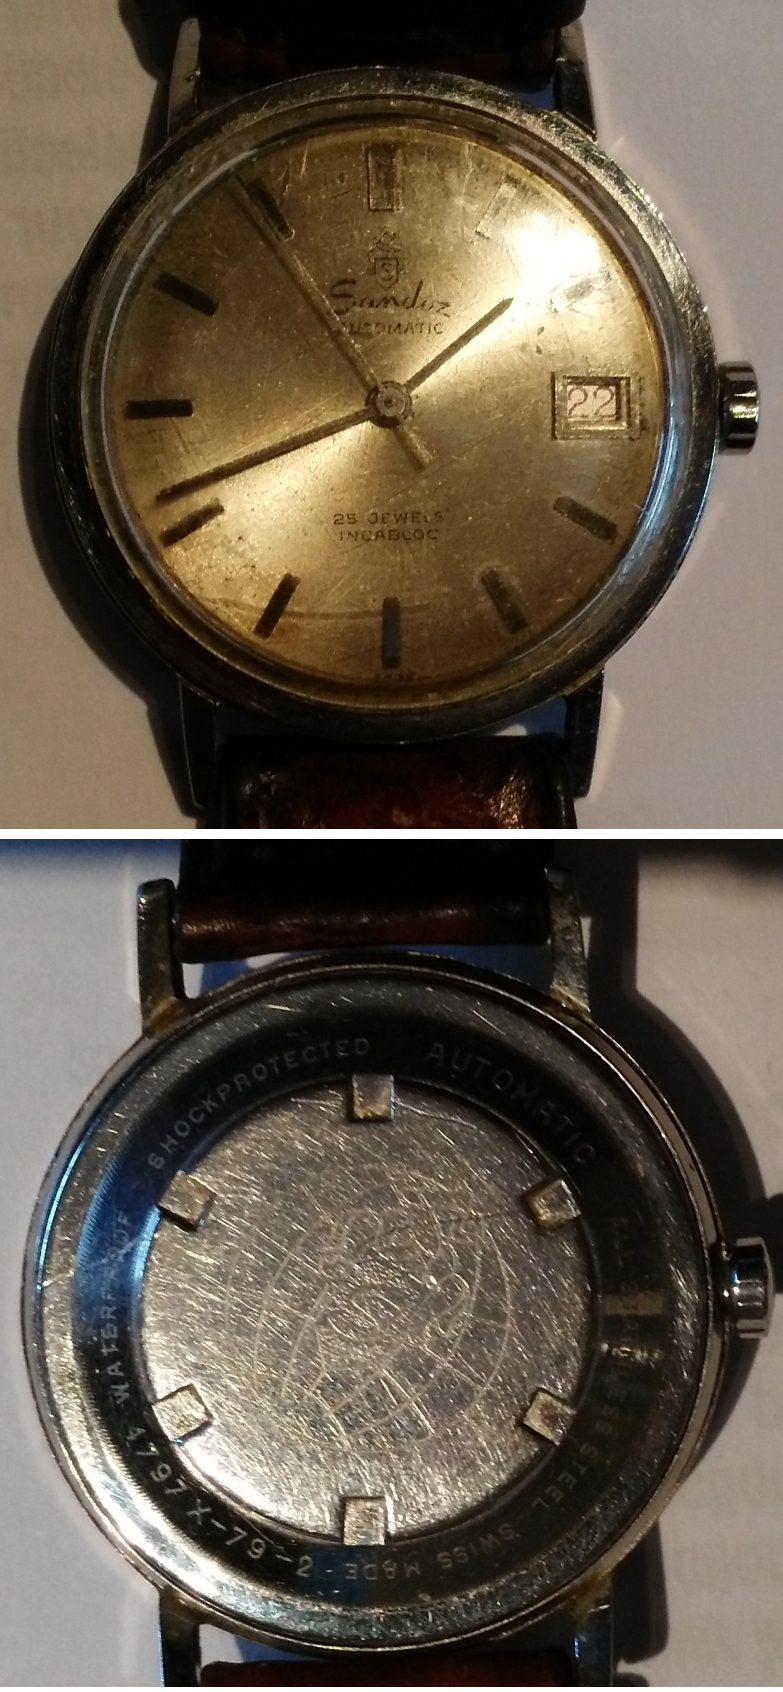 Sandoz montre automatic 1797-X-79-2